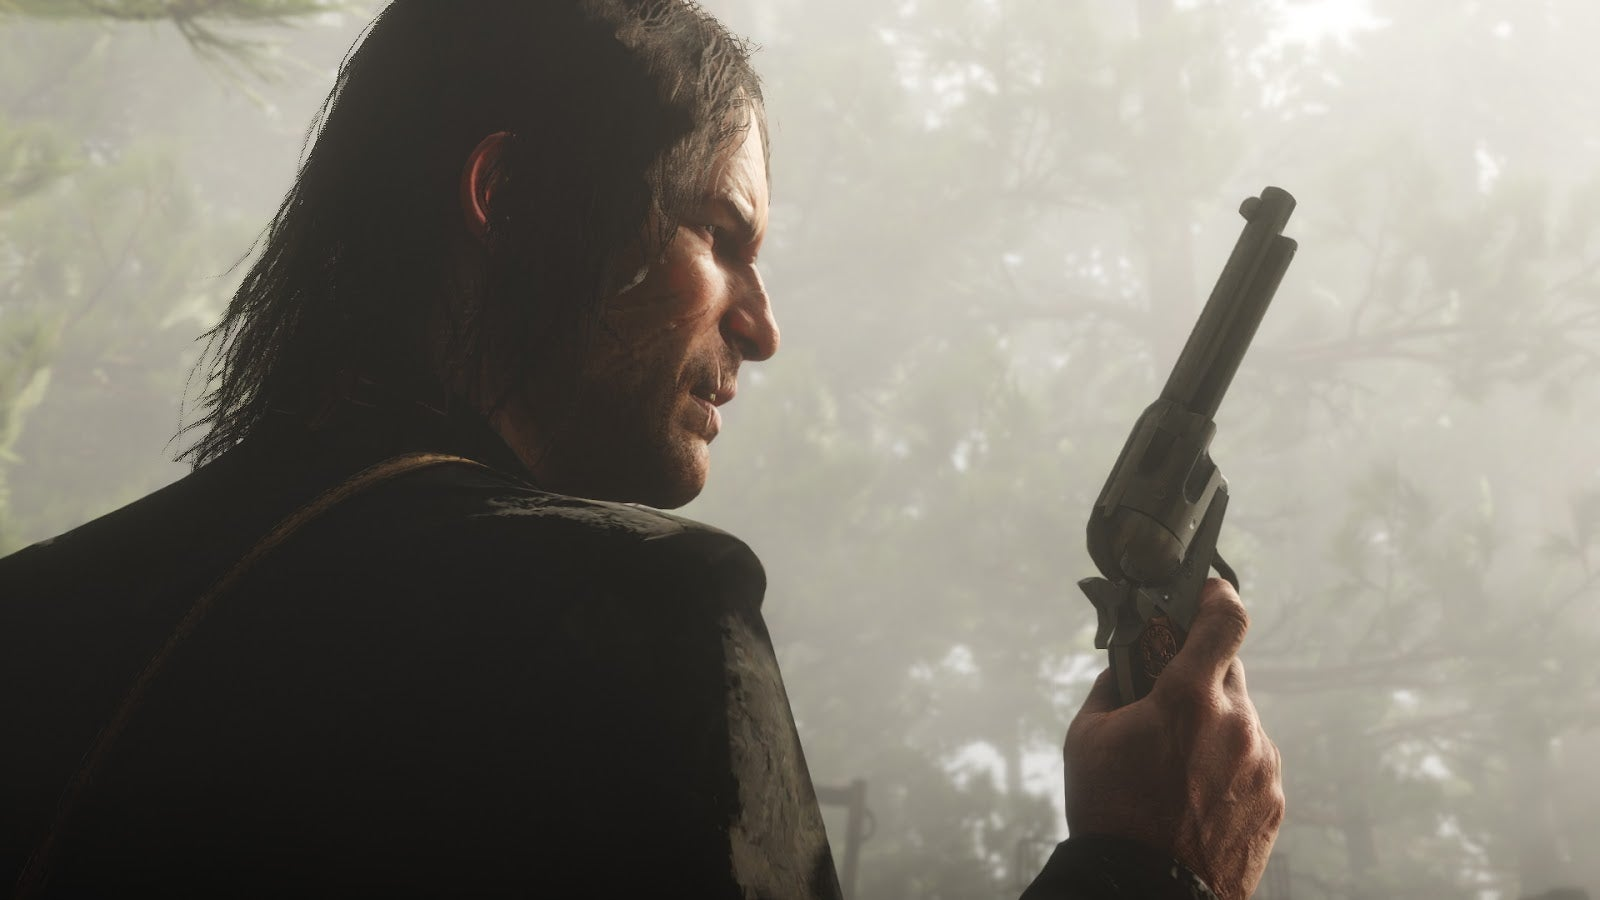 I Love Red Dead Redemption, But I Don't Want To See John